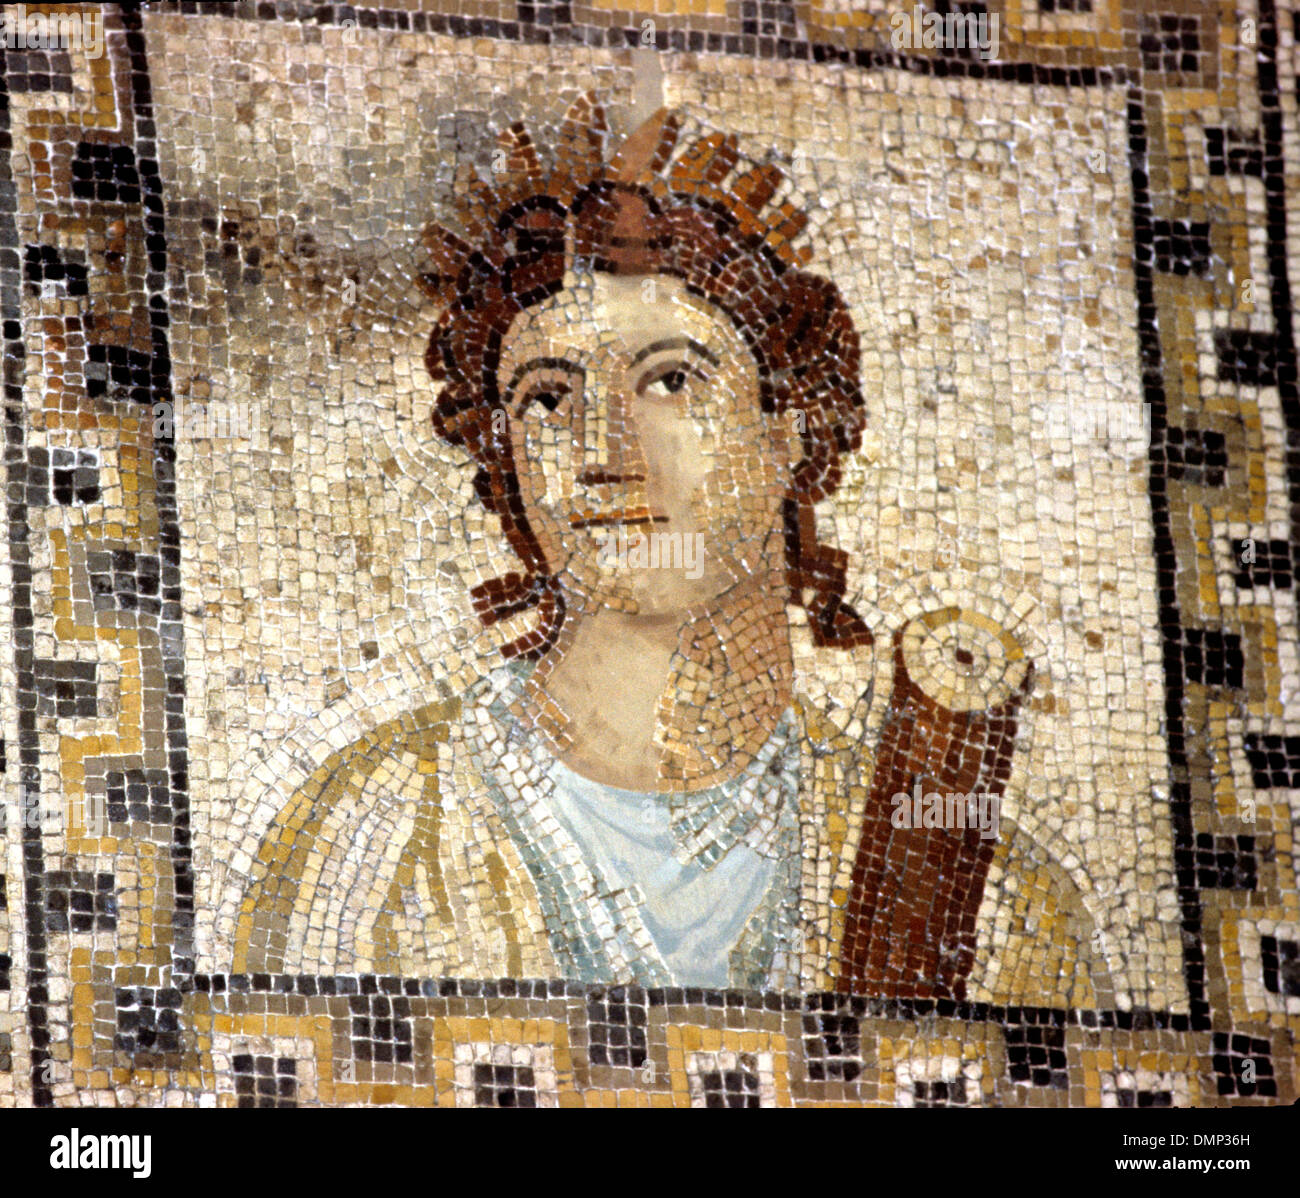 Romano-German period. Mosaic. Clio, muse of history, carrying scroll. - Stock Image